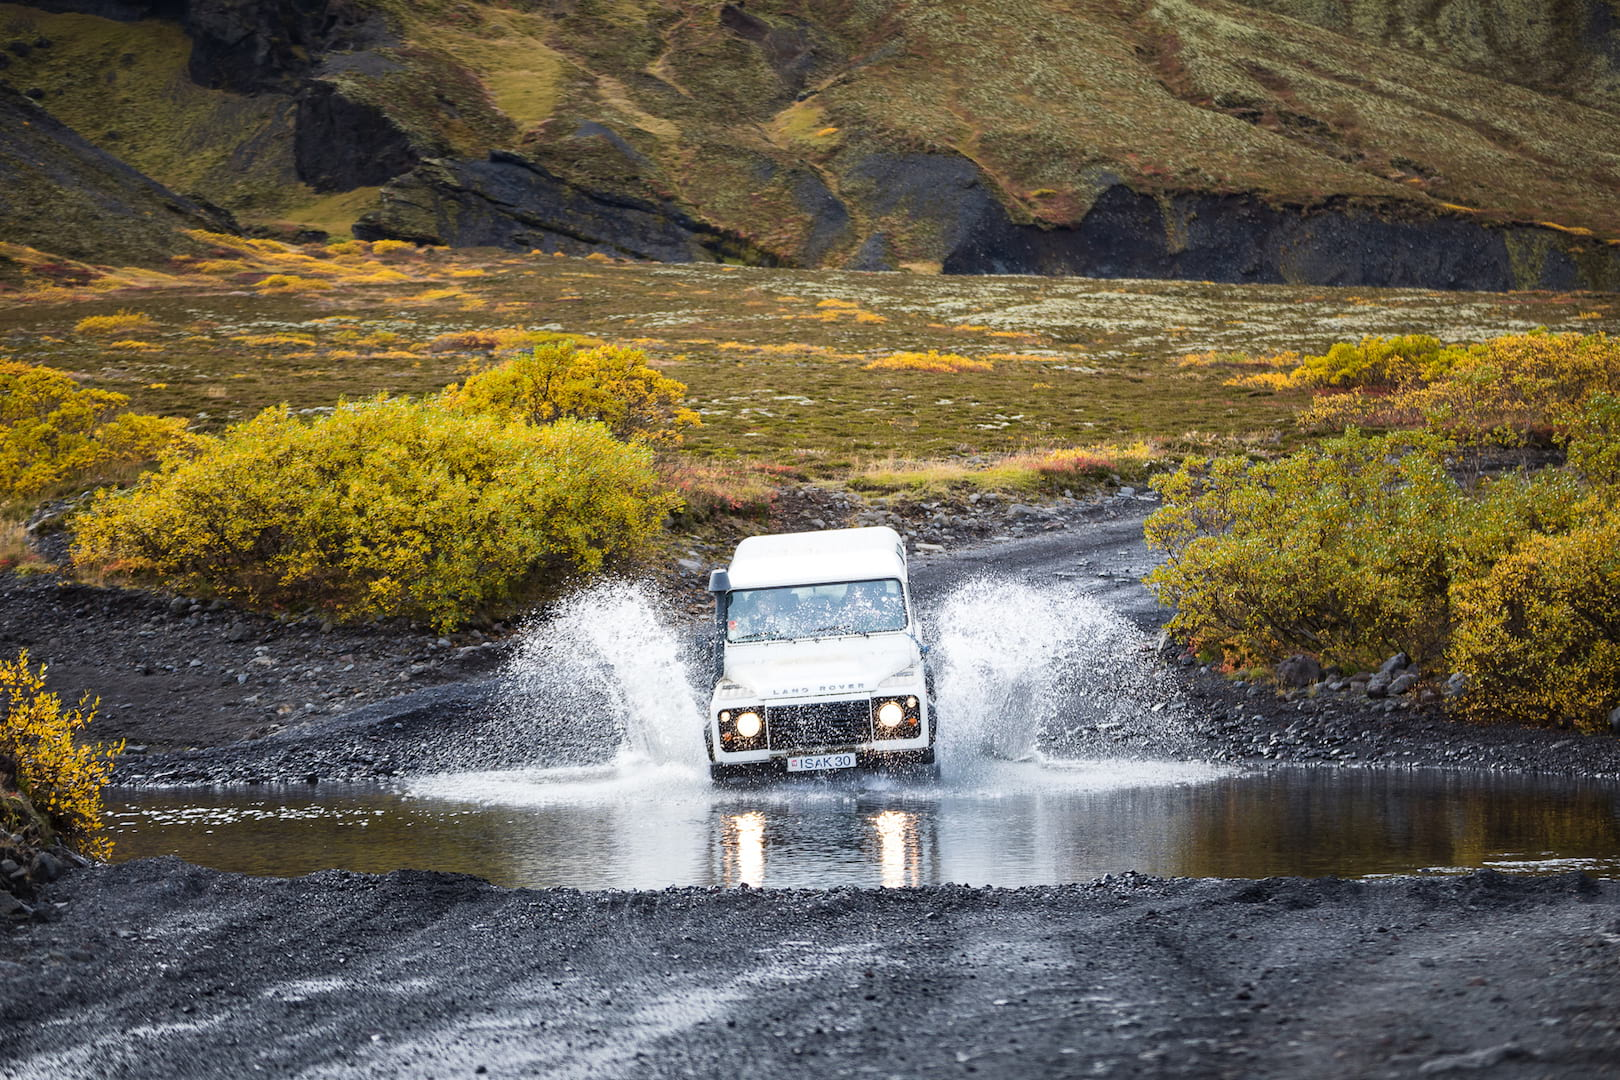 Adventurous river crossing by a white SupetJeep in Landmannalaugar, Iceland